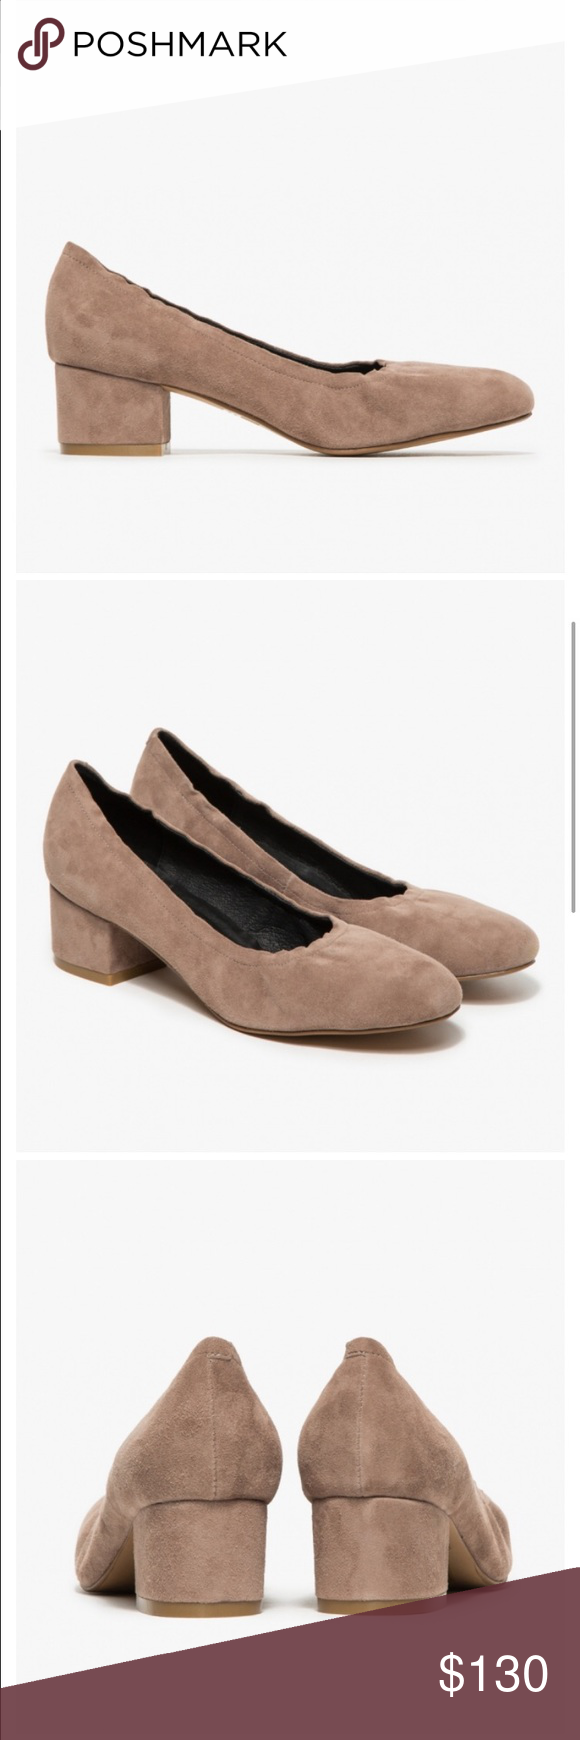 🎉HOST PICK!🎉Jeffrey Campbell Taupe Suede Heels Jeffrey Campbell Taupe Suede Heels.  Like new.  A classic, soft suede heel, features round toe, and leather lining. Jeffrey Campbell Shoes Heels